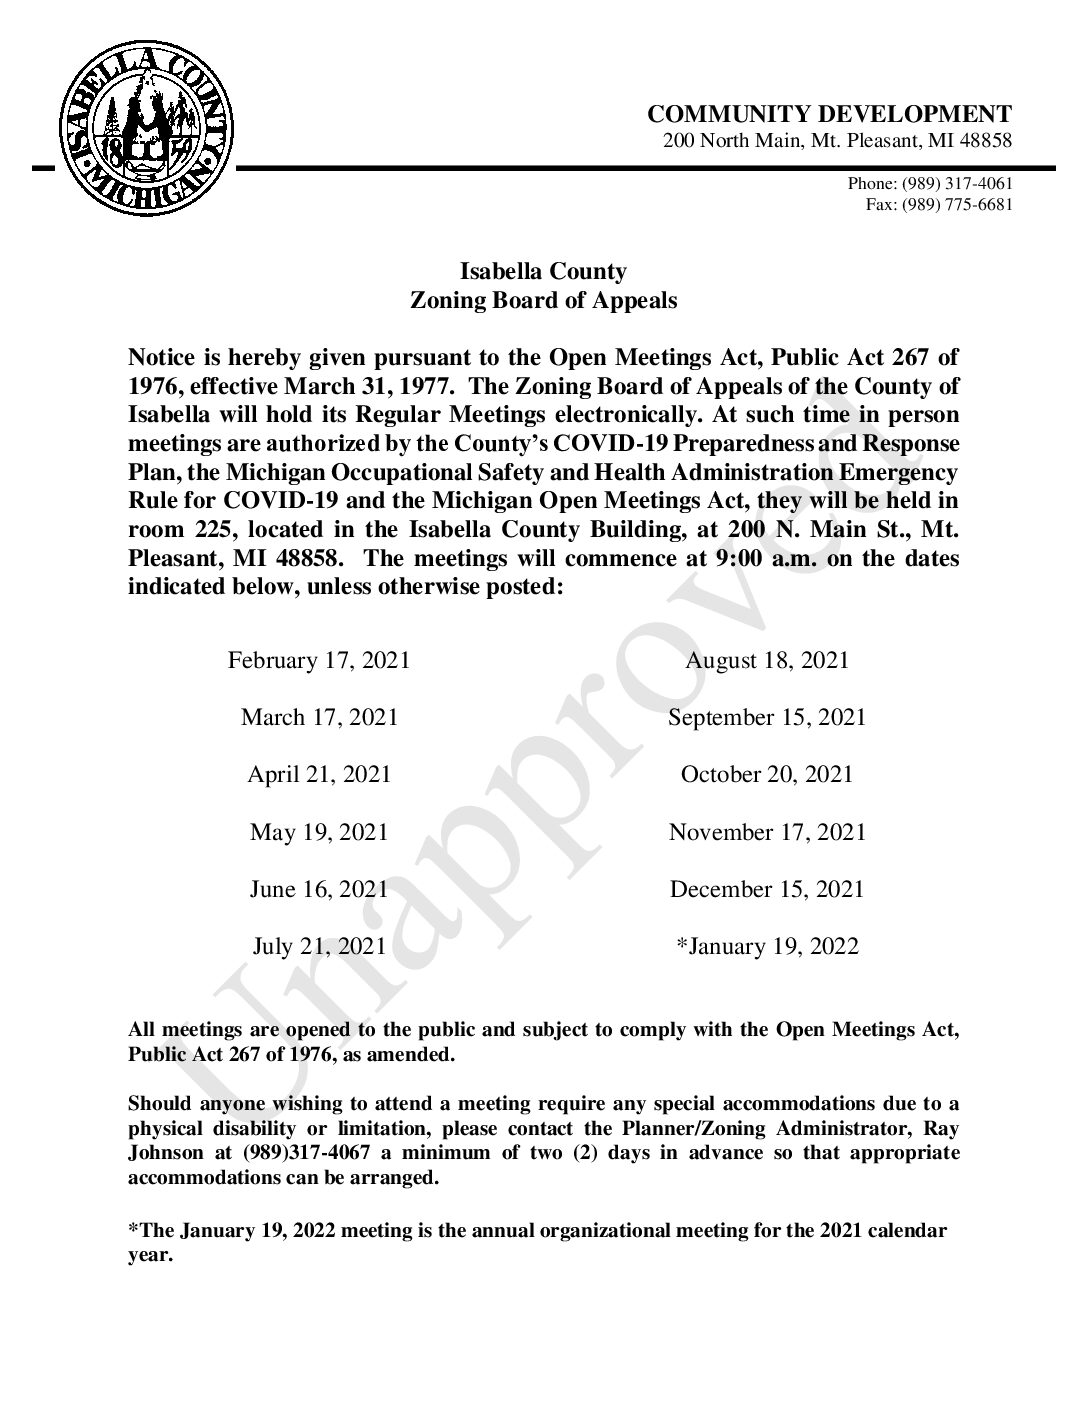 preview image of first page 2021 Zoning Board of Appeals Proposed Meeting Calendar